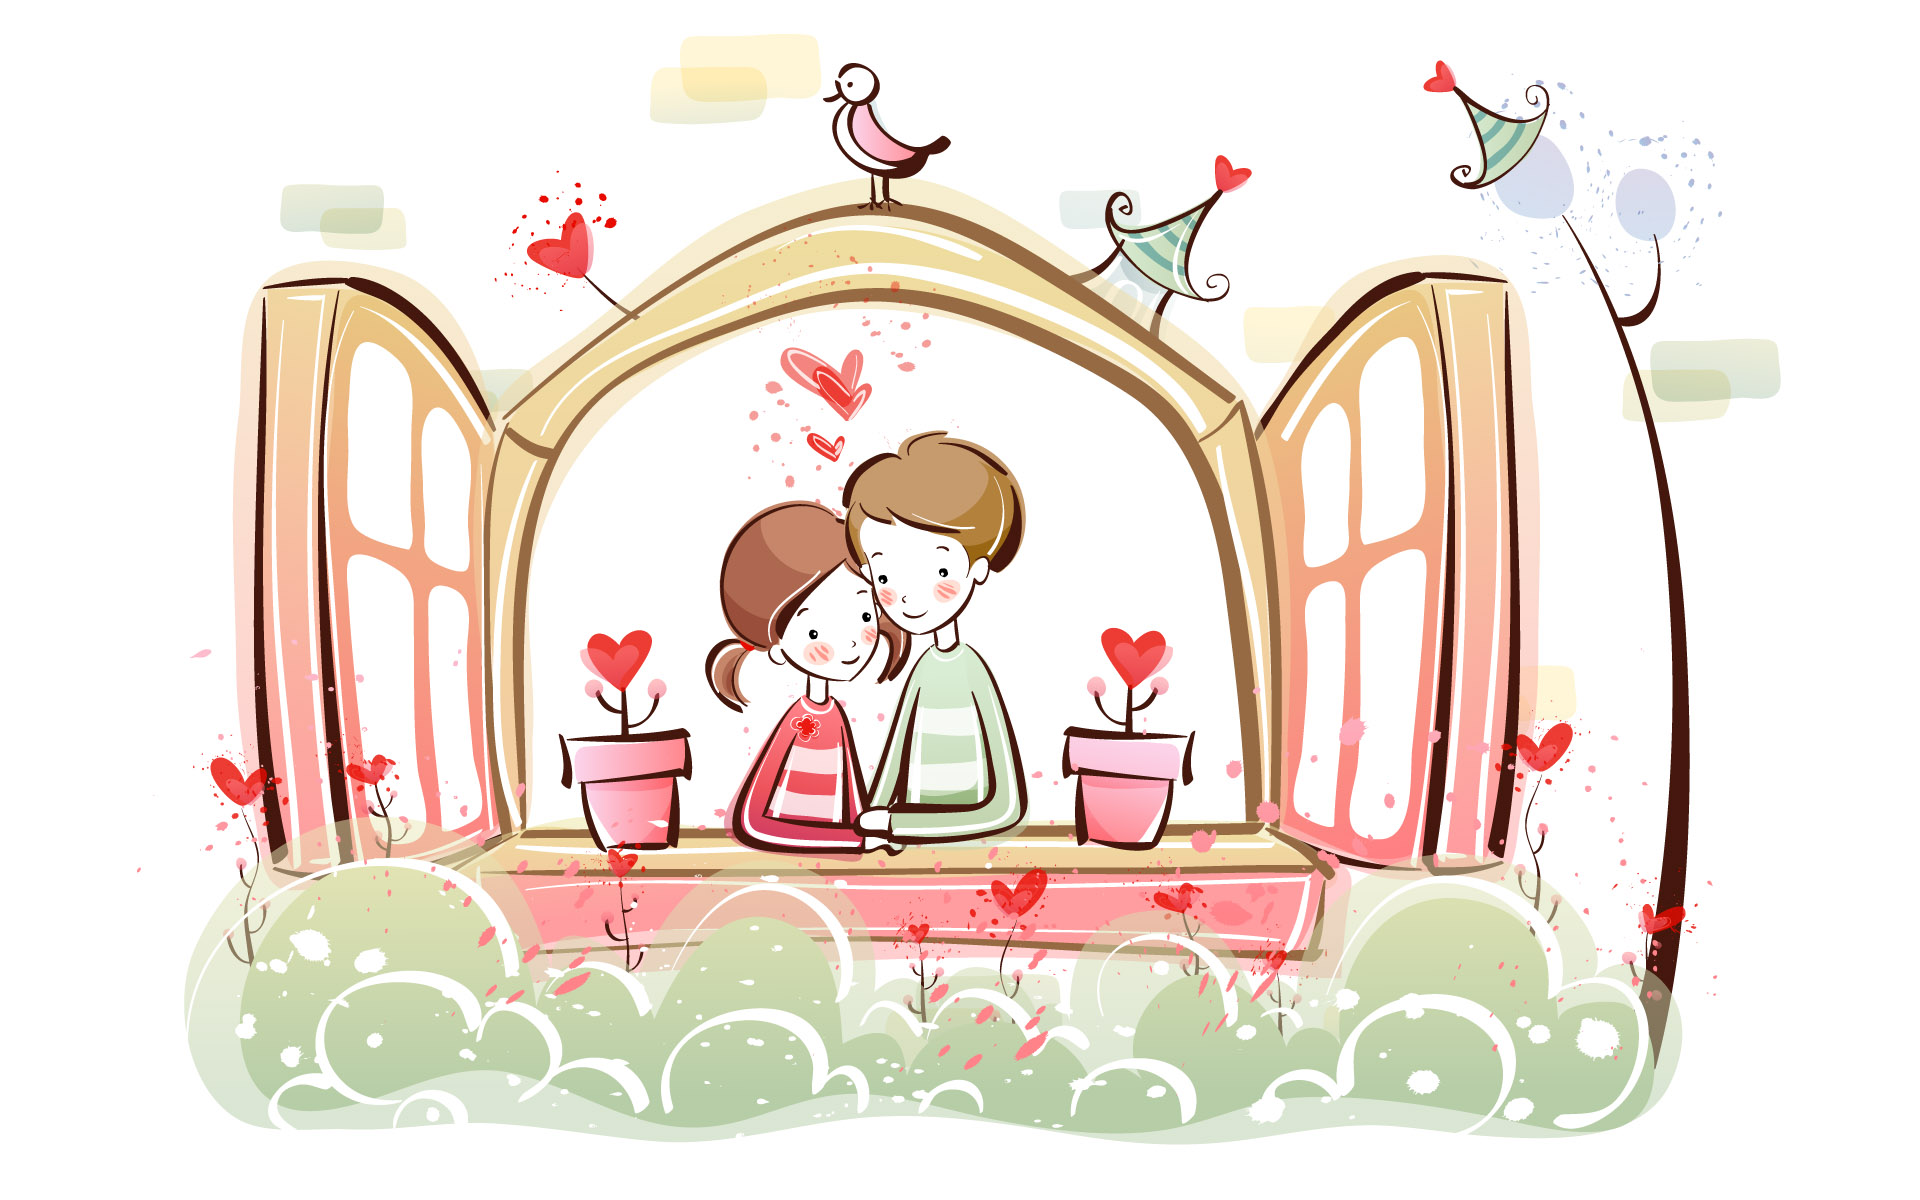 Romantic Valentine's Day illustration class 11735